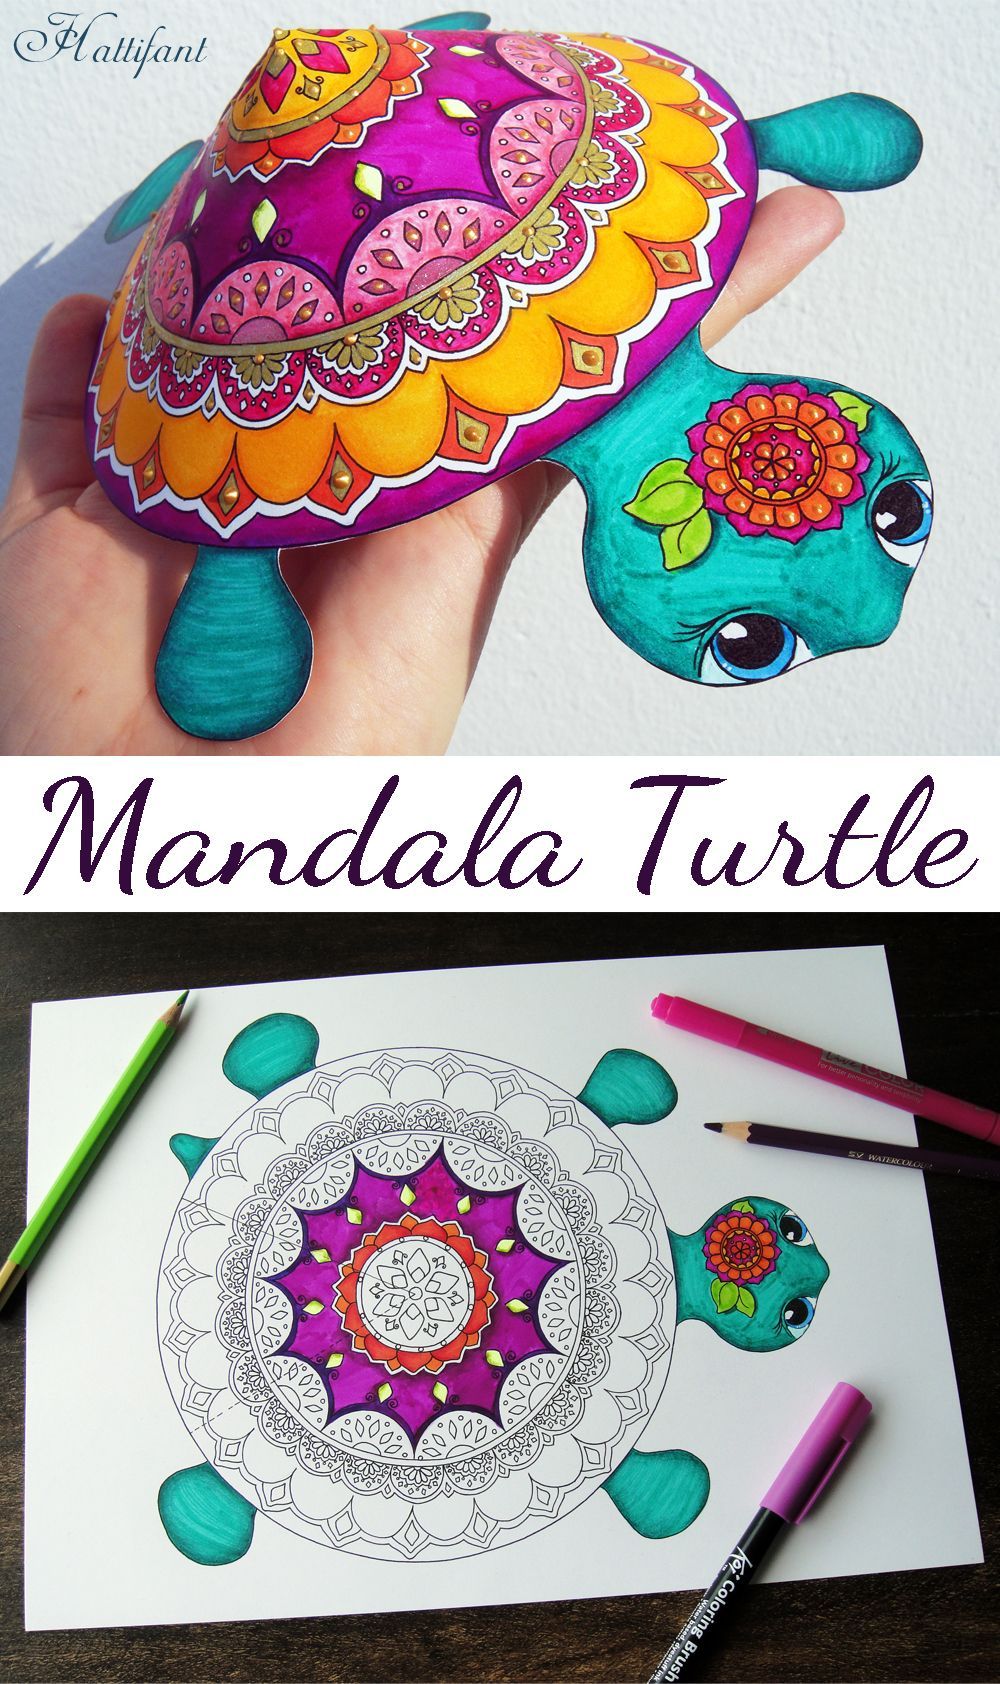 Fabulous Mandala Turtles For You To Color And Play With